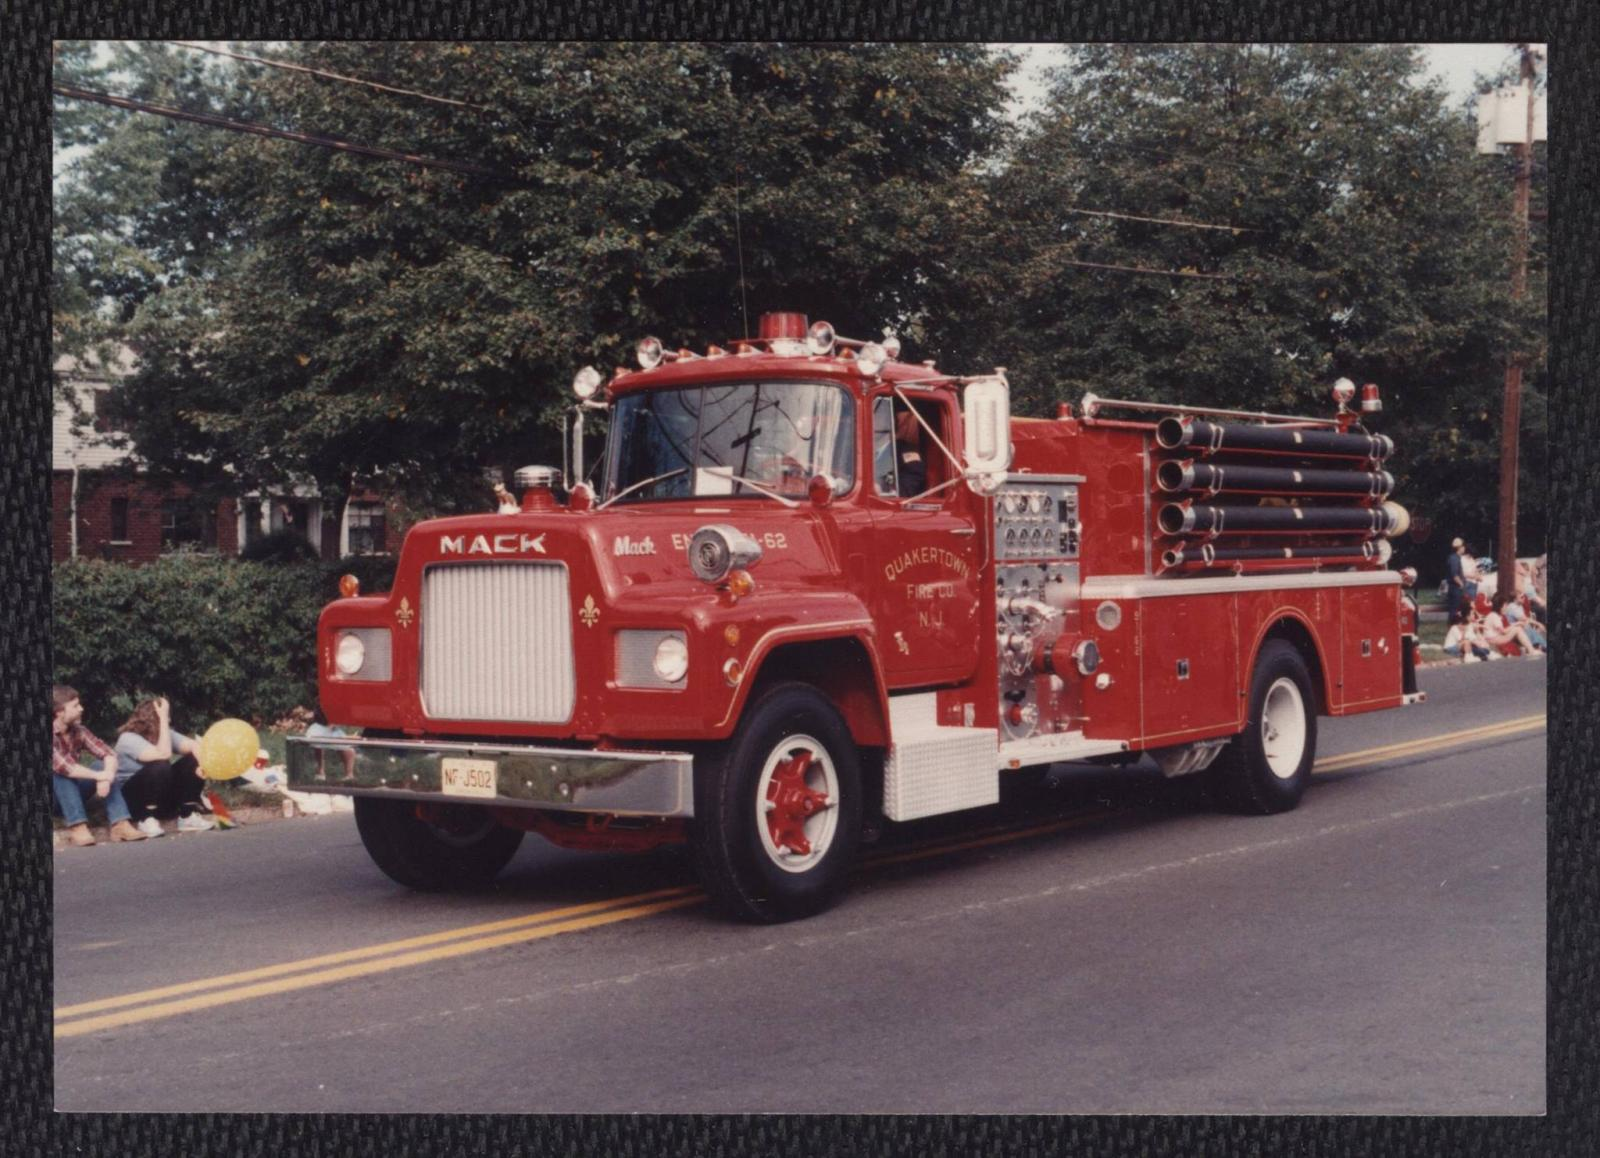 1973 Mack Tractor Truck : Looking for mack r fire truck apparatus